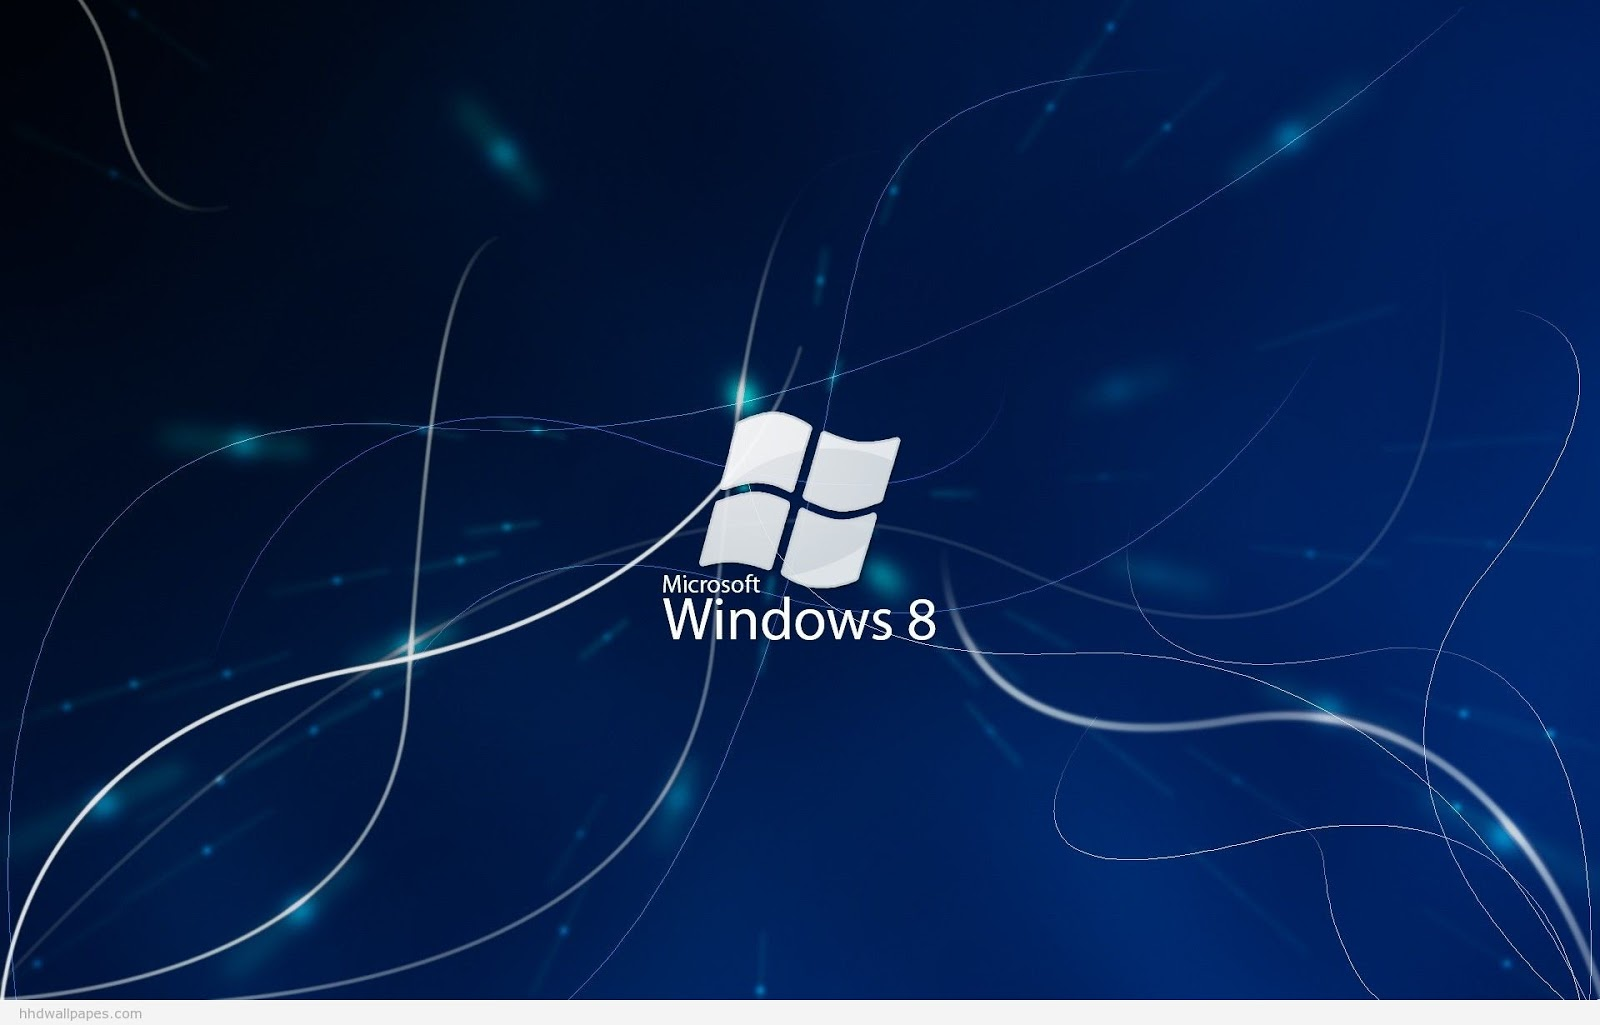 Windows 8 high resolution wallpaper wallpapersafari for Quality windows